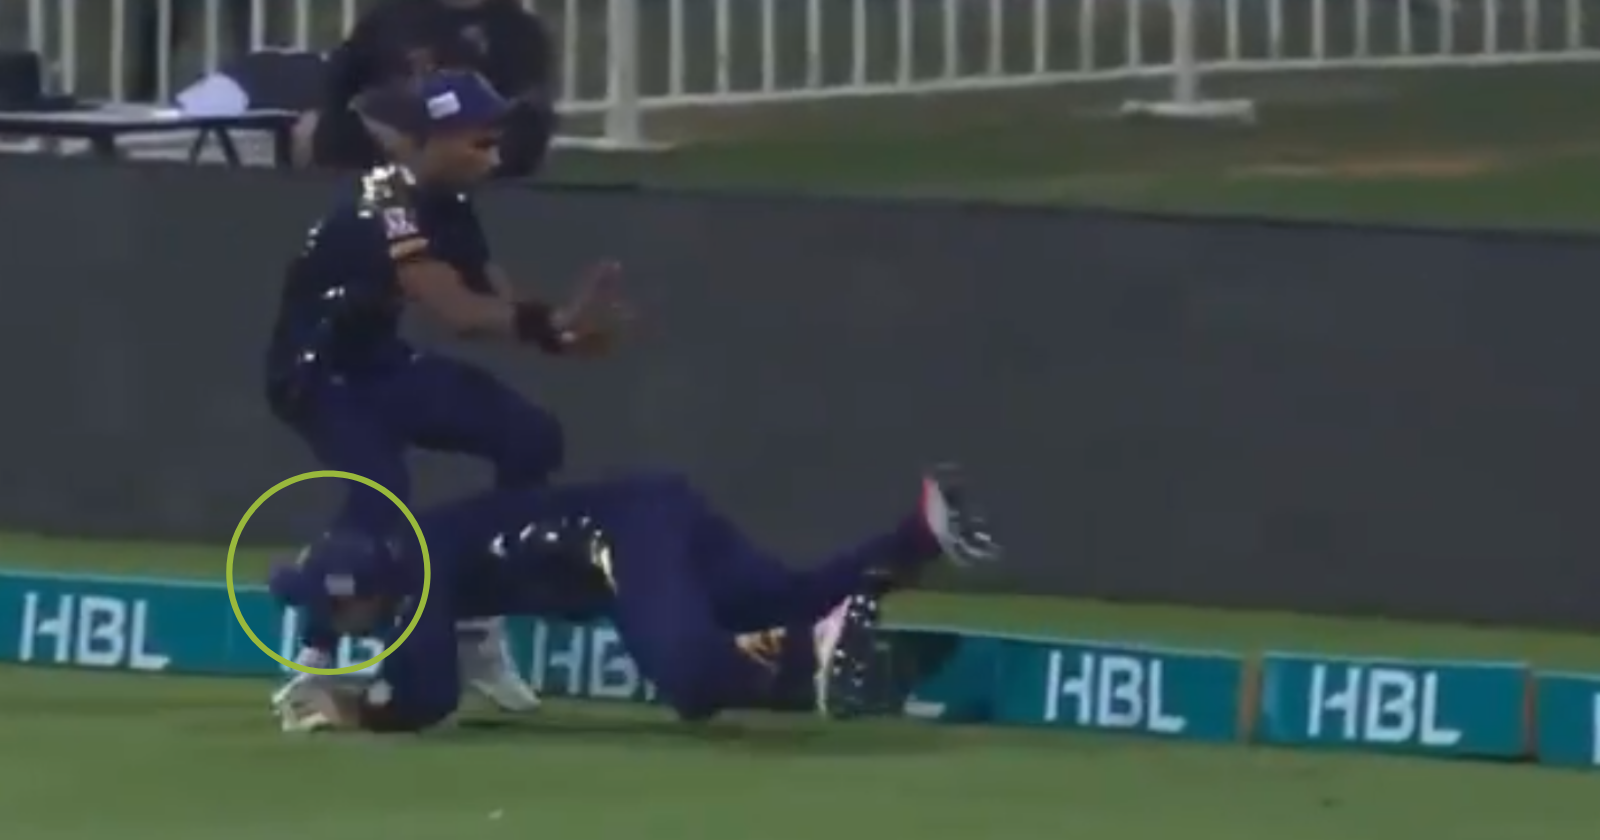 Faf du Plessis Hospitalized After Colliding With Mohammad Hasnain On The Field In PSL 2021